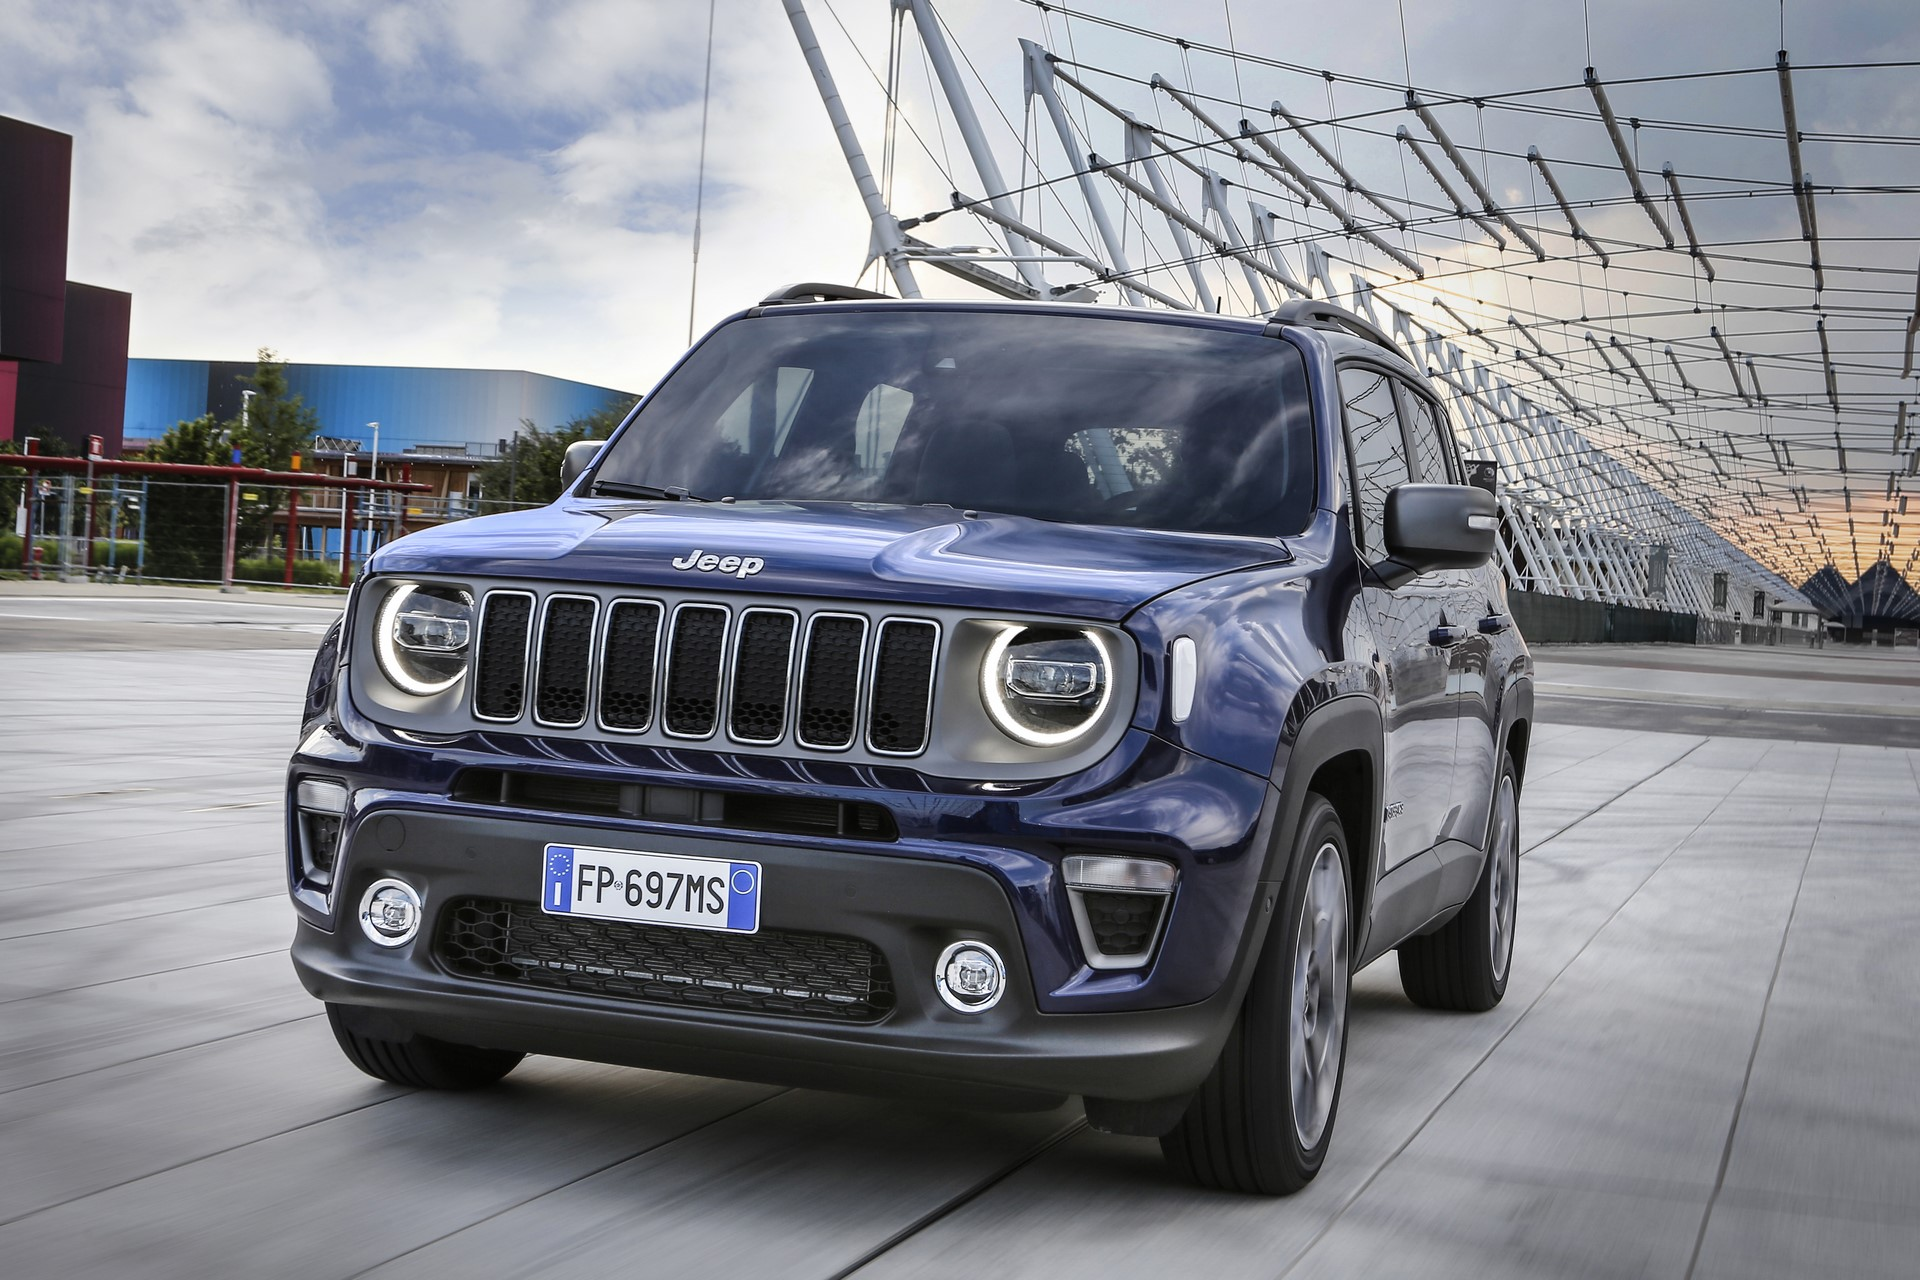 Jeep Renegade facelift 2019 (14)